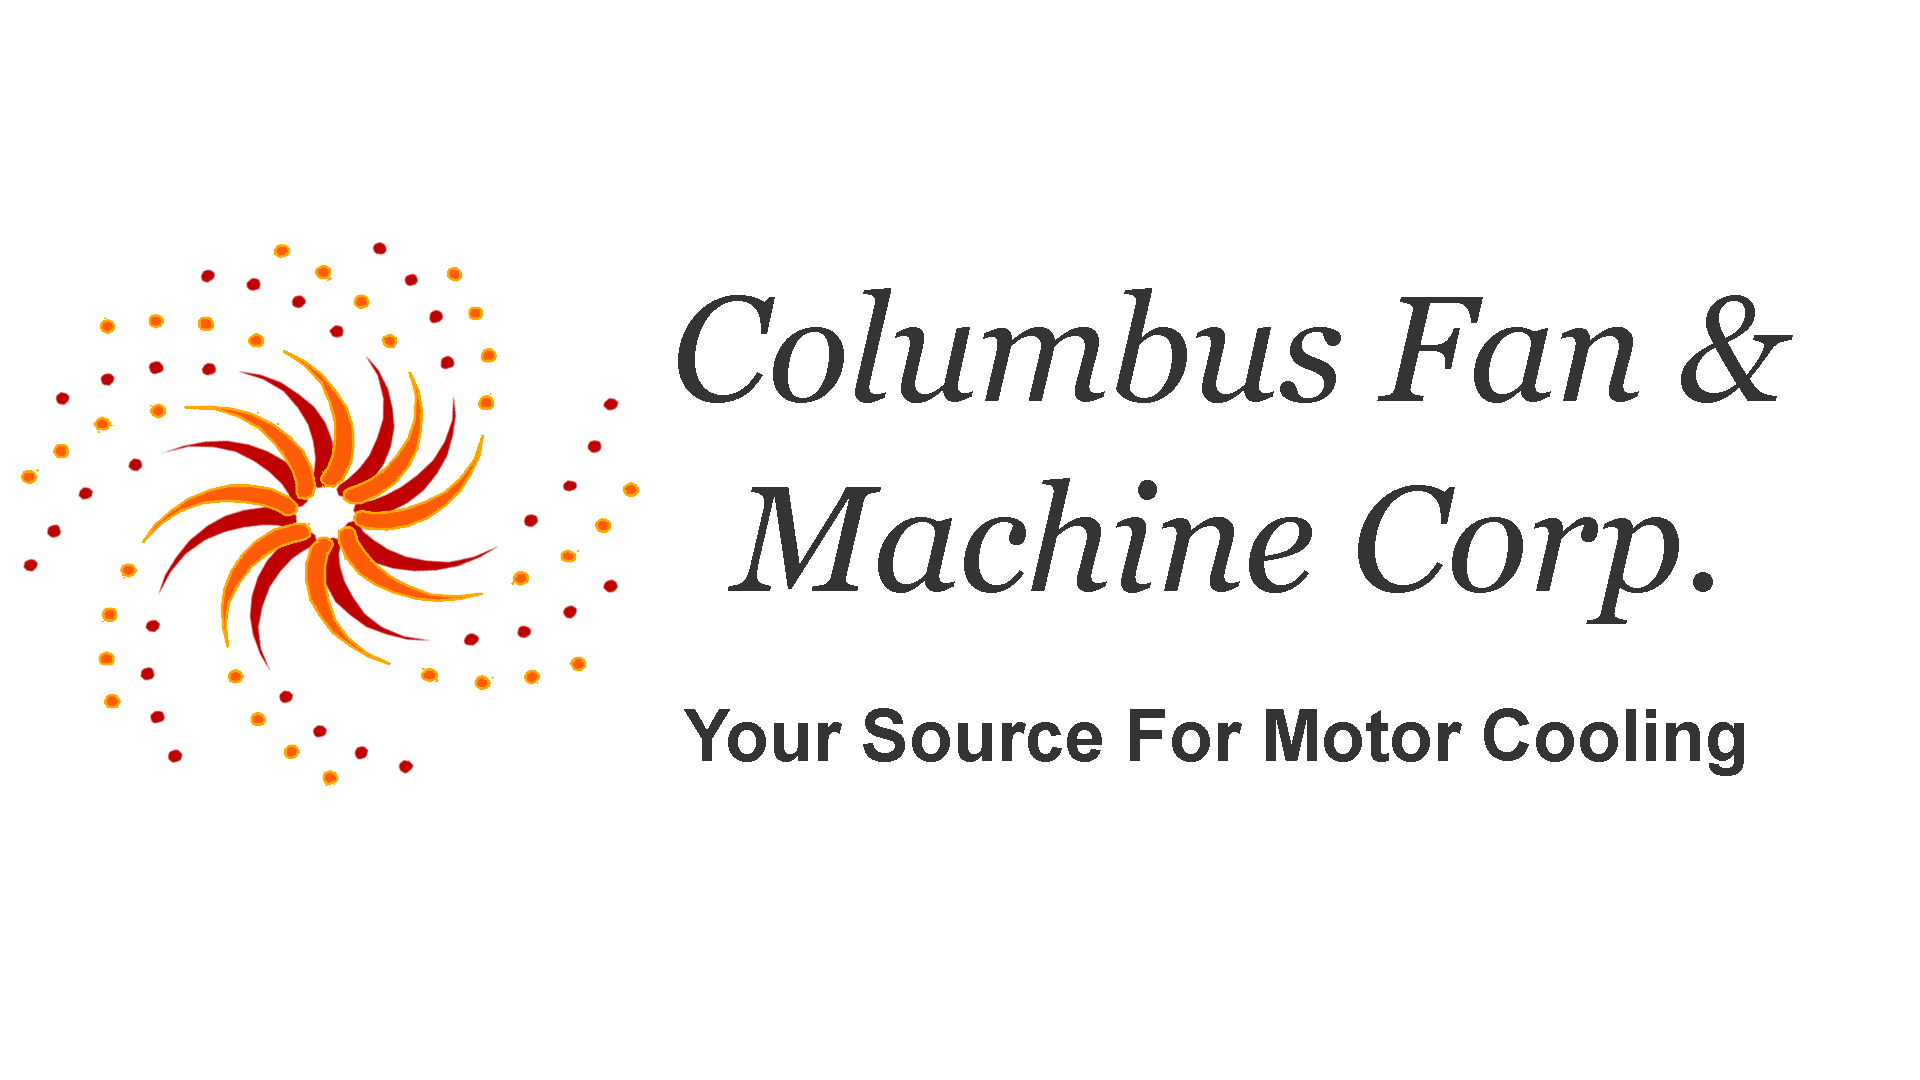 Columbus Fan & Machine Corp logo, a manufacturer that relies on Helwig's bearing protector